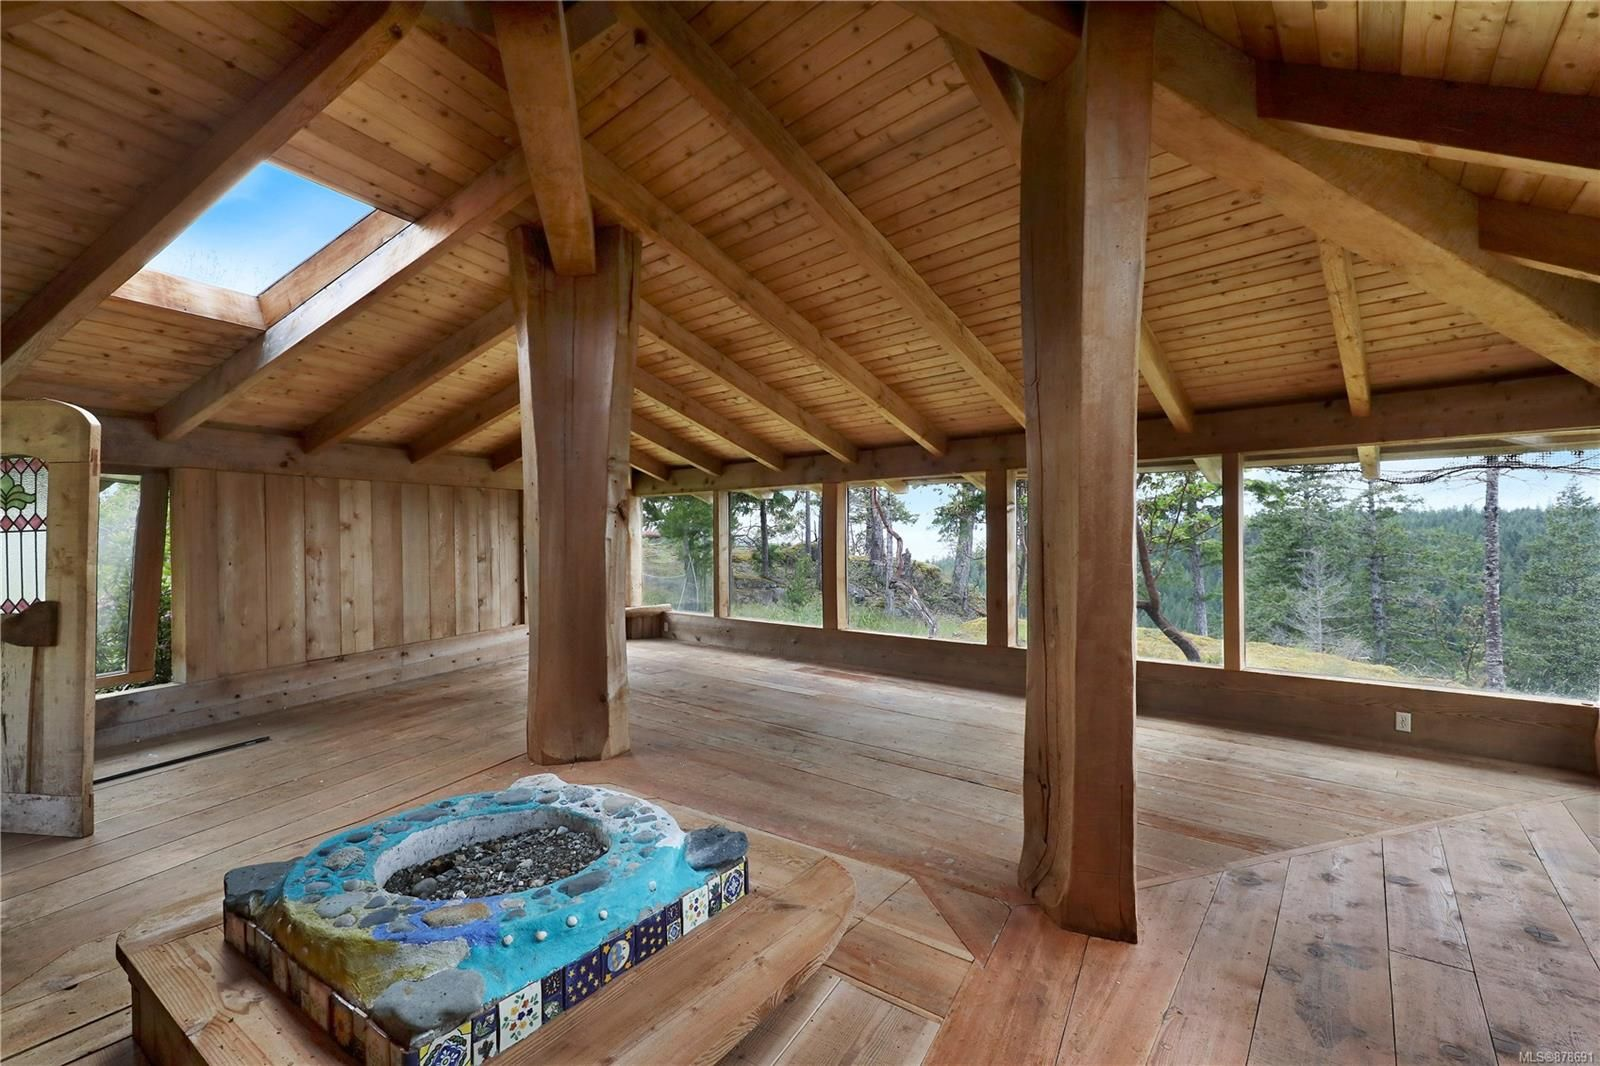 Photo 21: Photos: 979 Thunder Rd in : Isl Cortes Island House for sale (Islands)  : MLS®# 878691